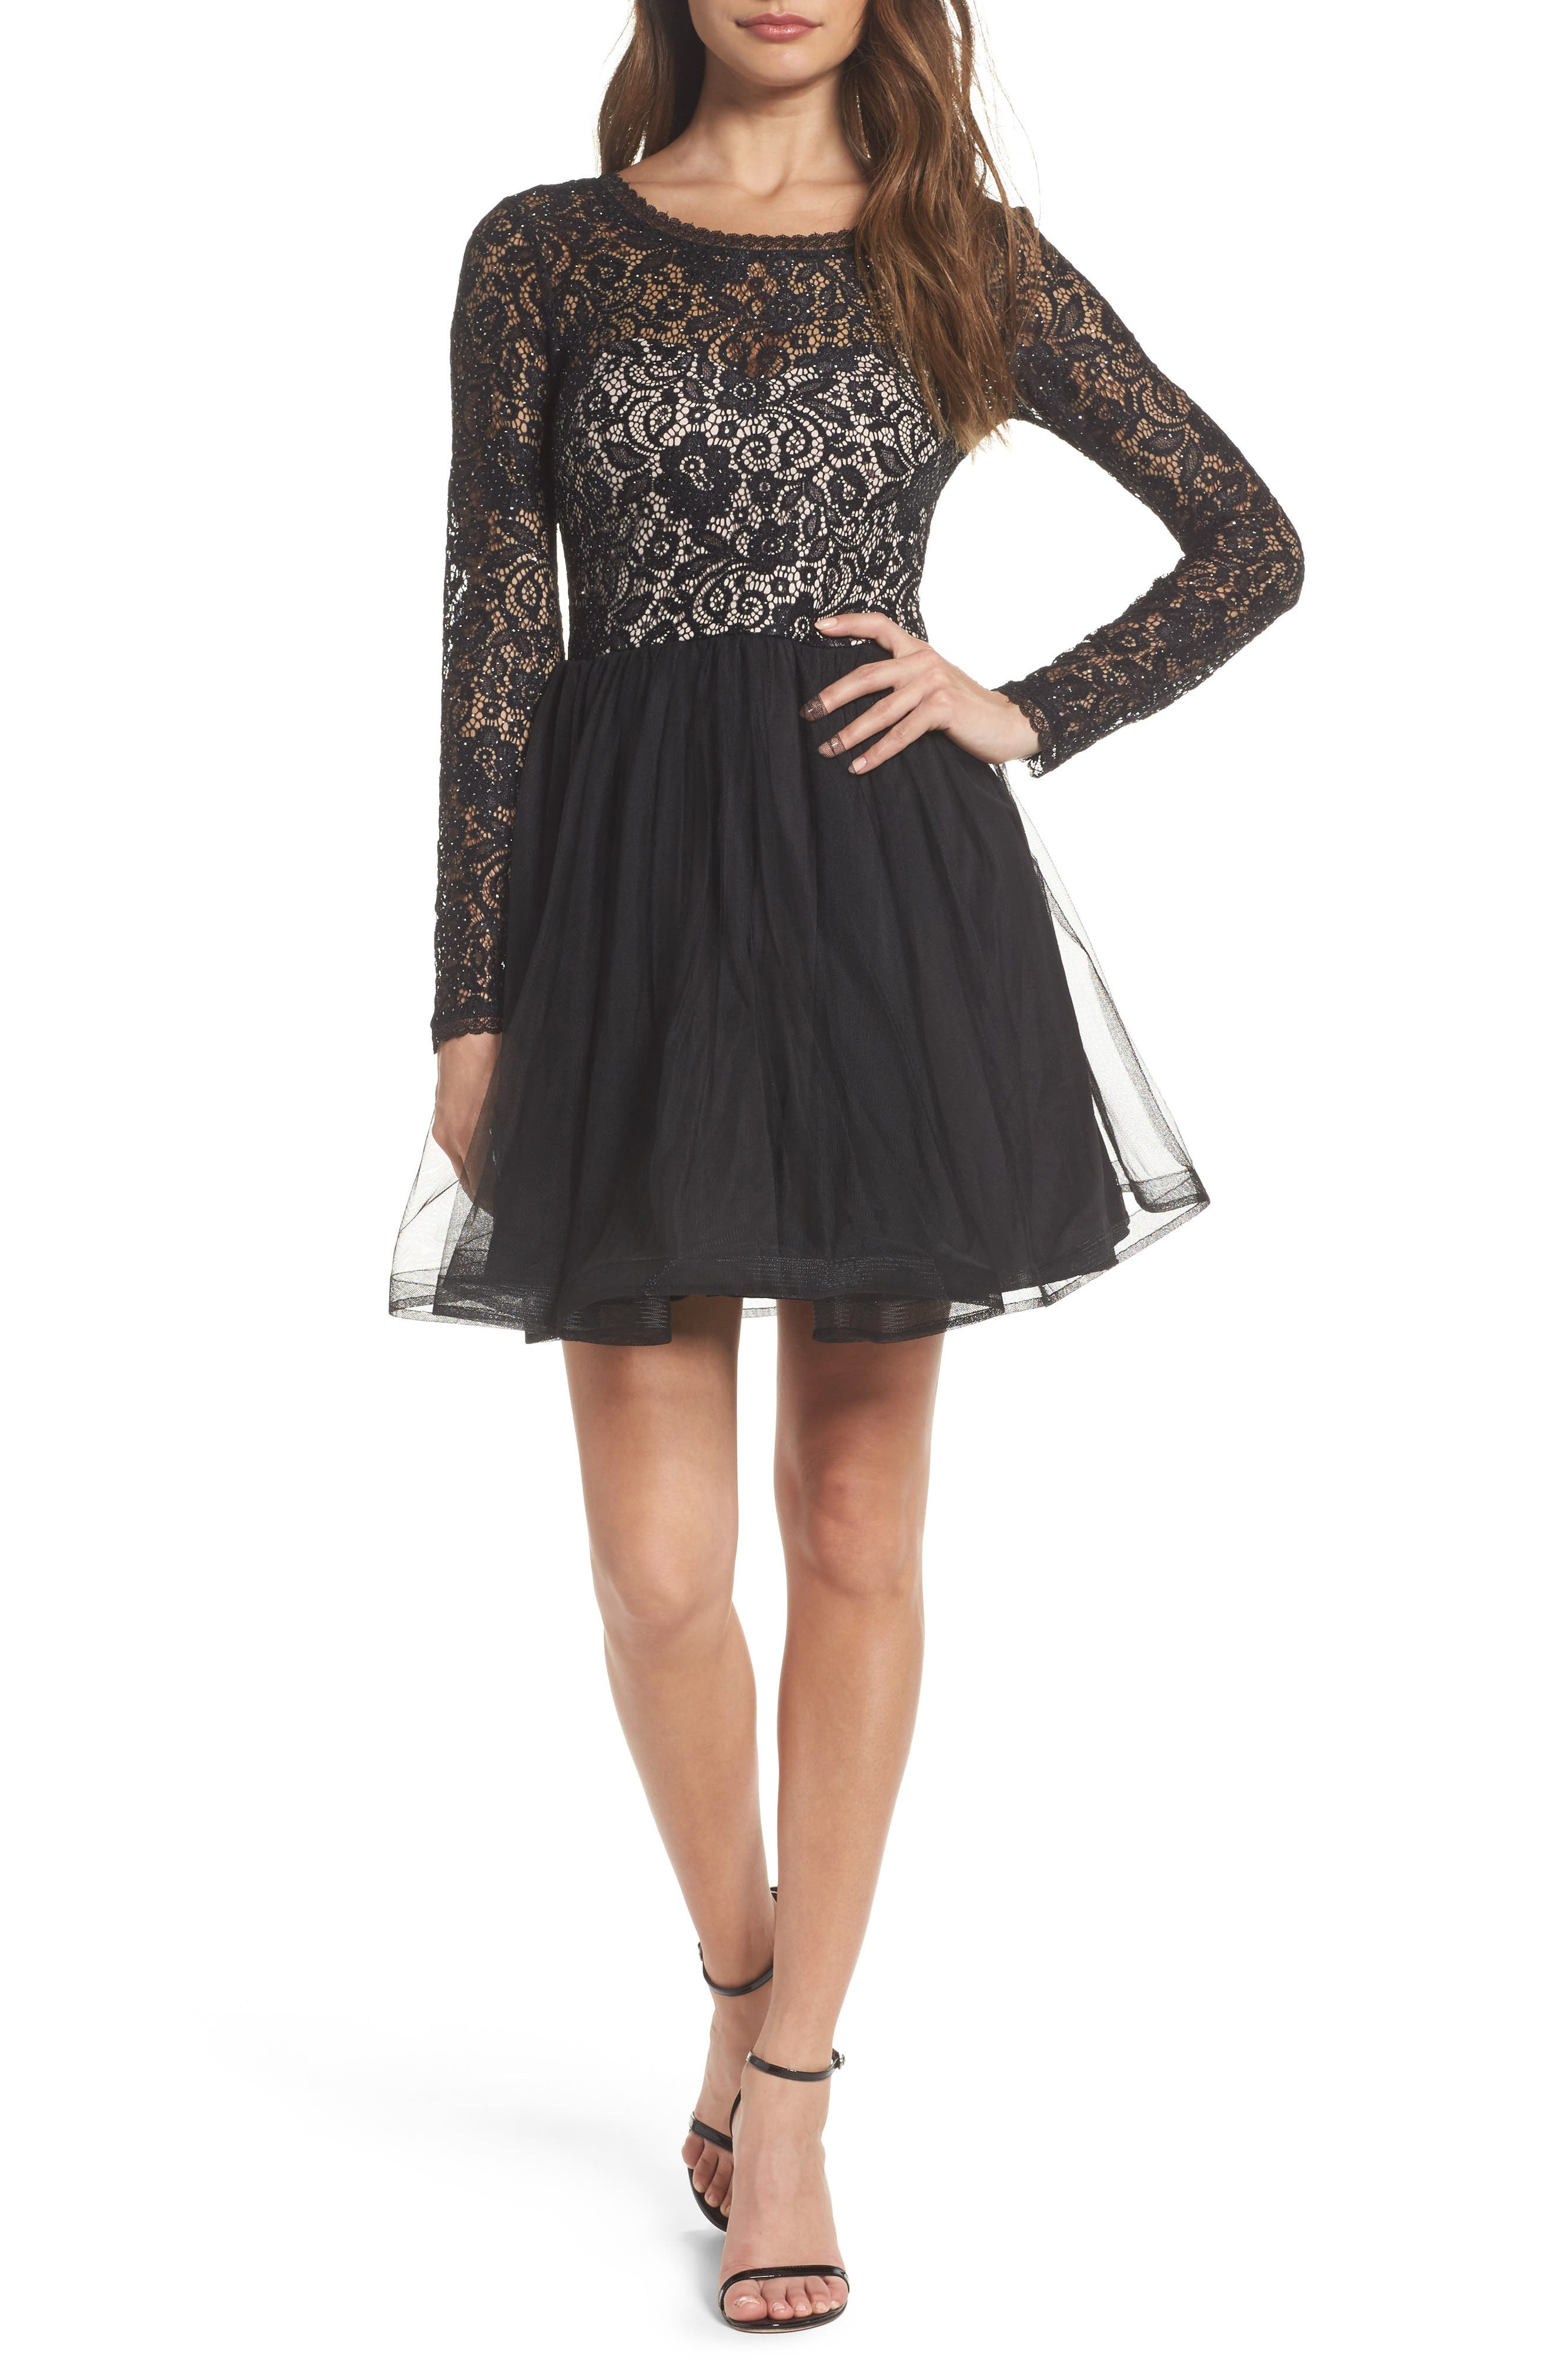 Sequin Hearts Tie Back Glitter Lace Fit & Flare Minidress